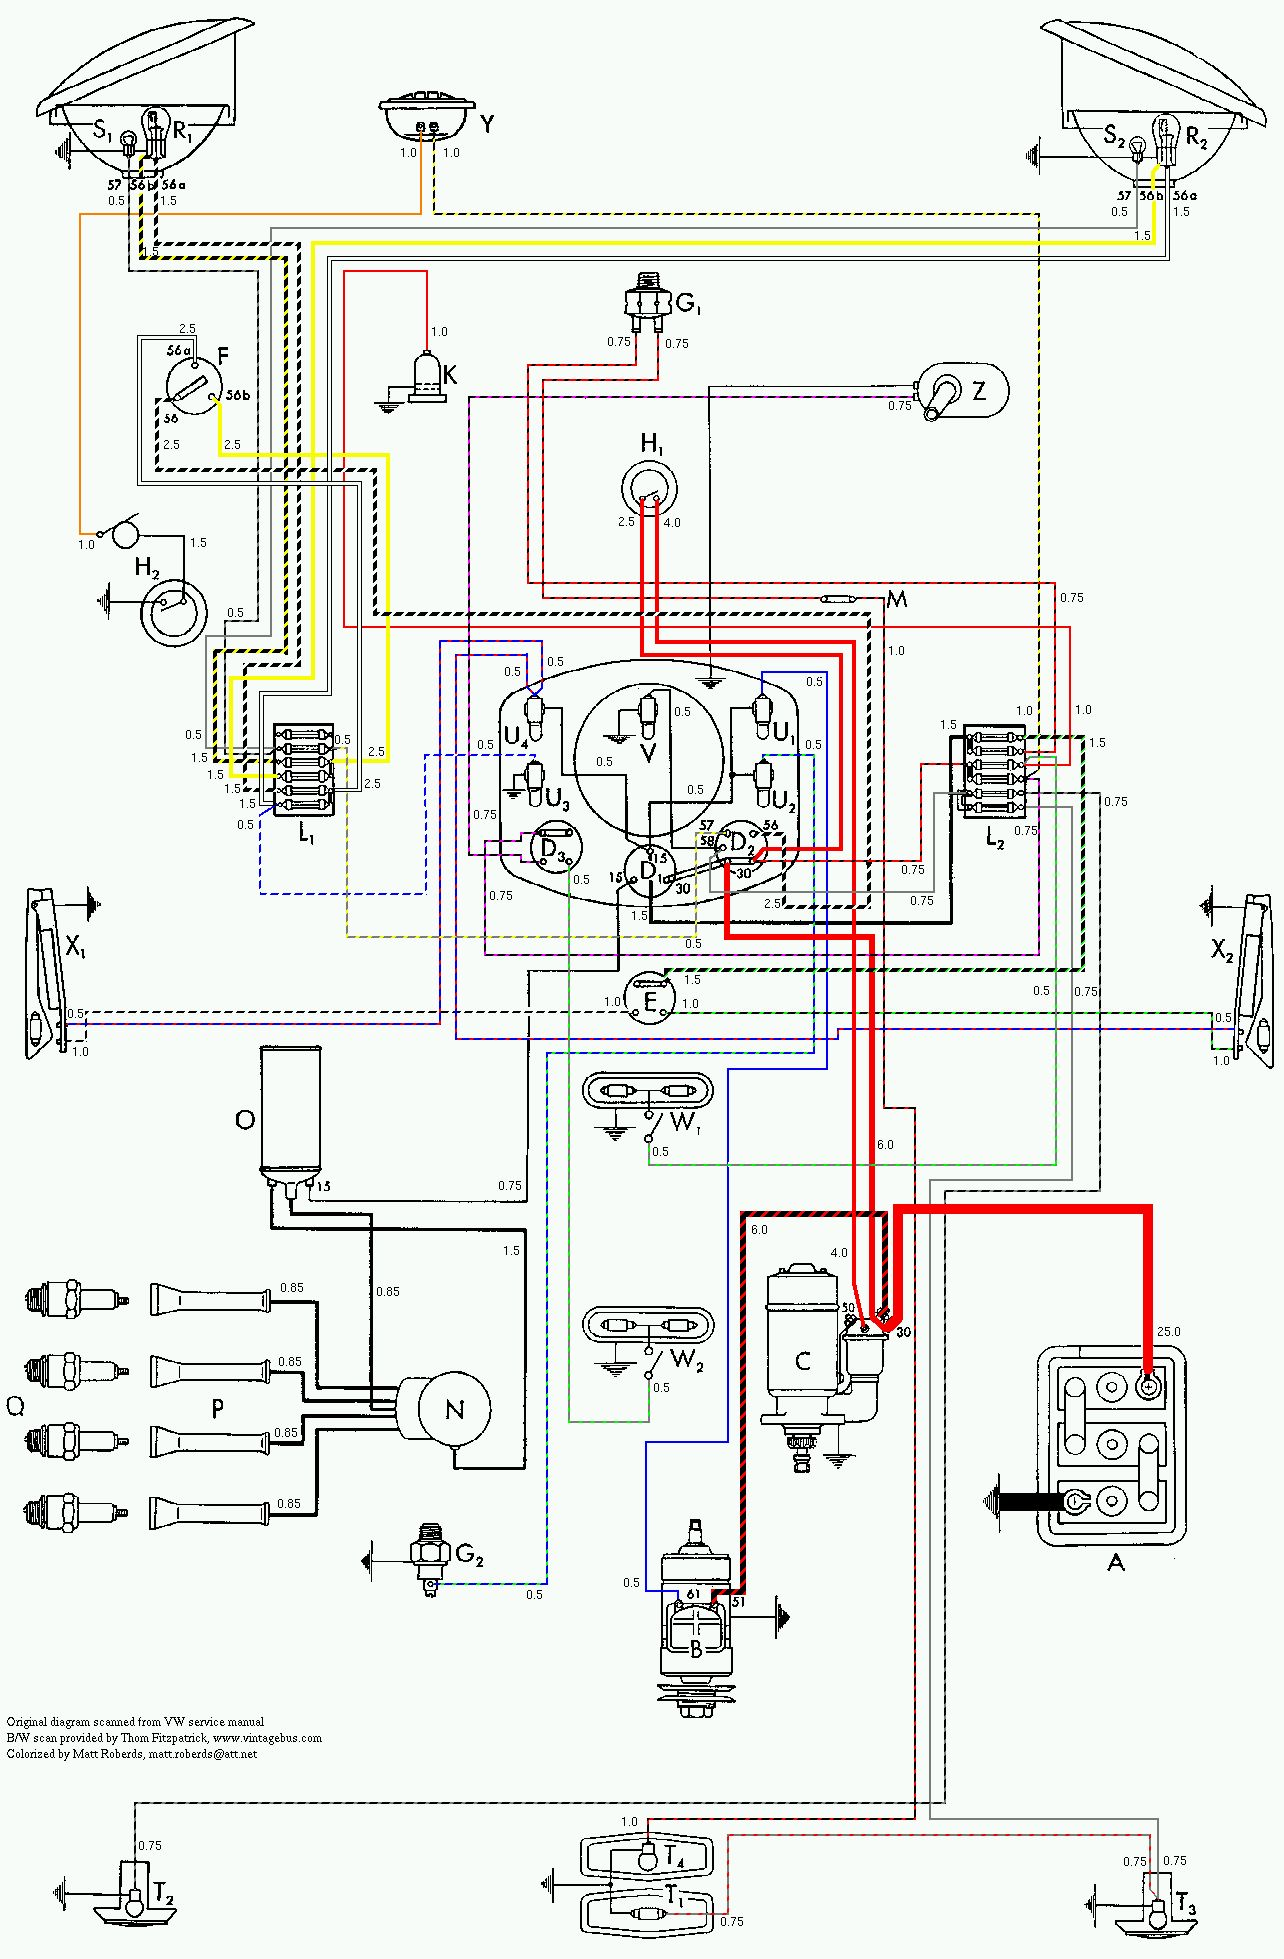 Easy Wiring Harness Vw Air Cooled Library Bus